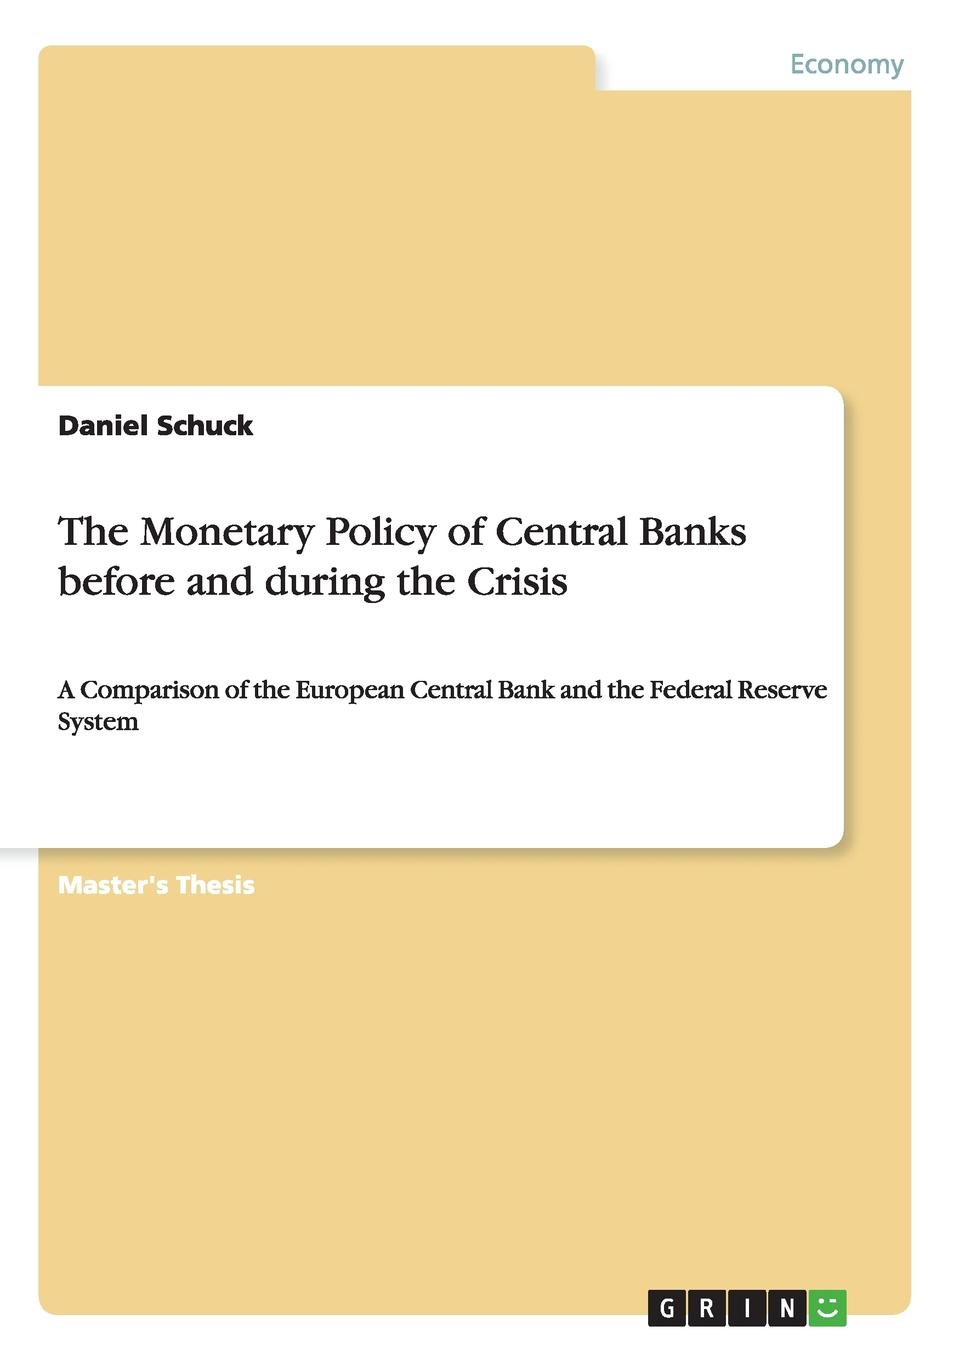 Daniel Schuck The Monetary Policy of Central Banks before and during the Crisis veronika gaßner the united kingdom and the european migrant crisis 2015 16 public dialogue and government action